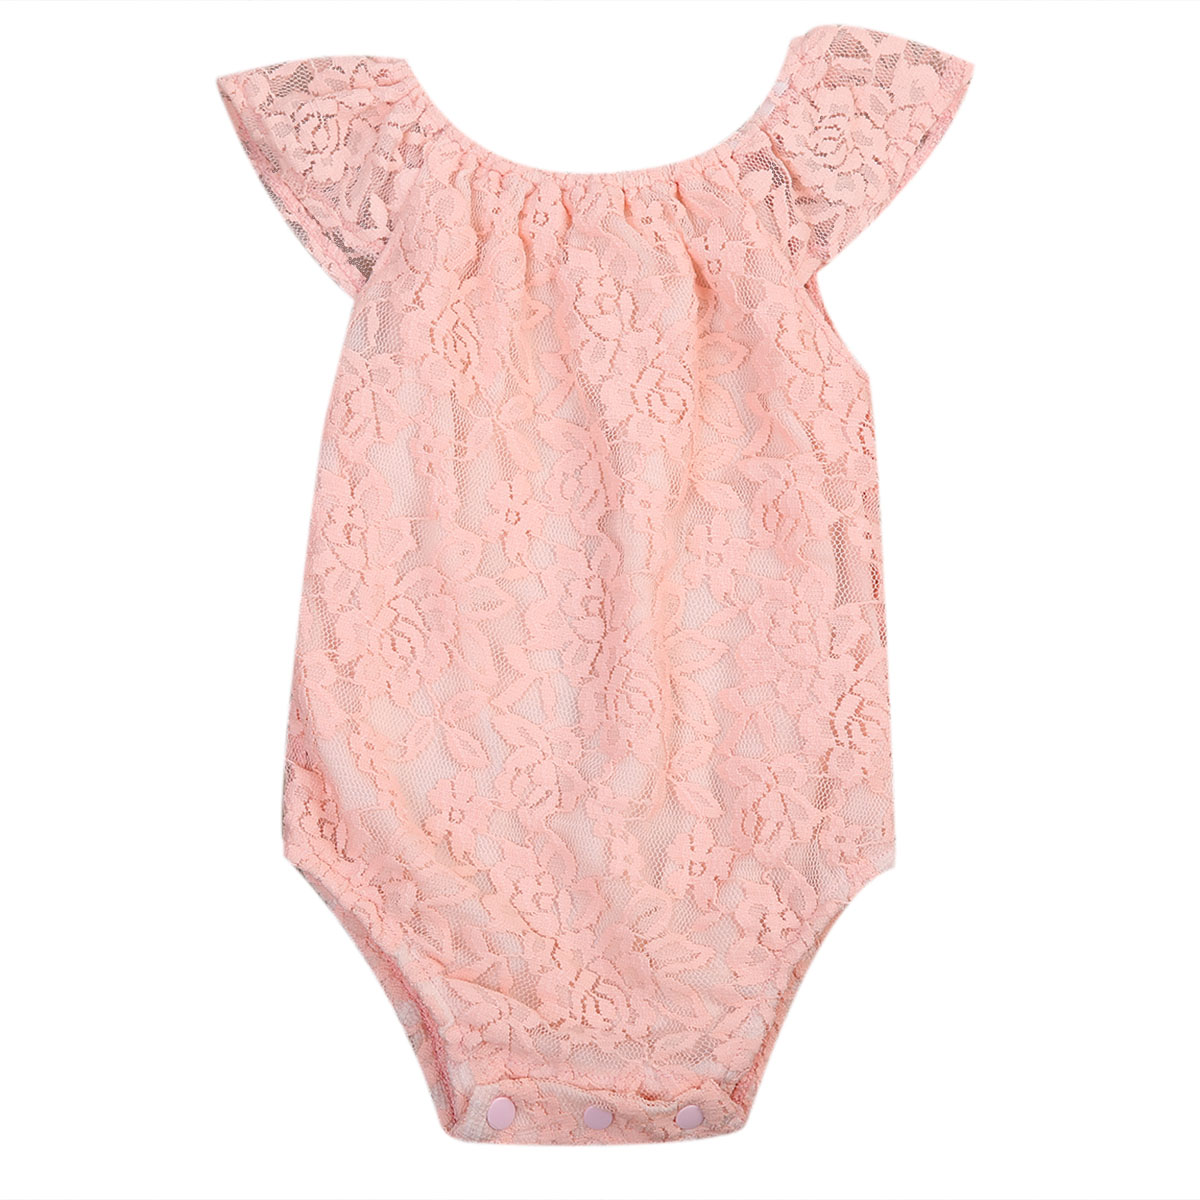 Cute Pink Baby Girls Sleeveless Lace Bodysuits Summer Kids Girl Ruffles Floral Bodysuit Jumpsuit Clothes Outfits Girls Clothing